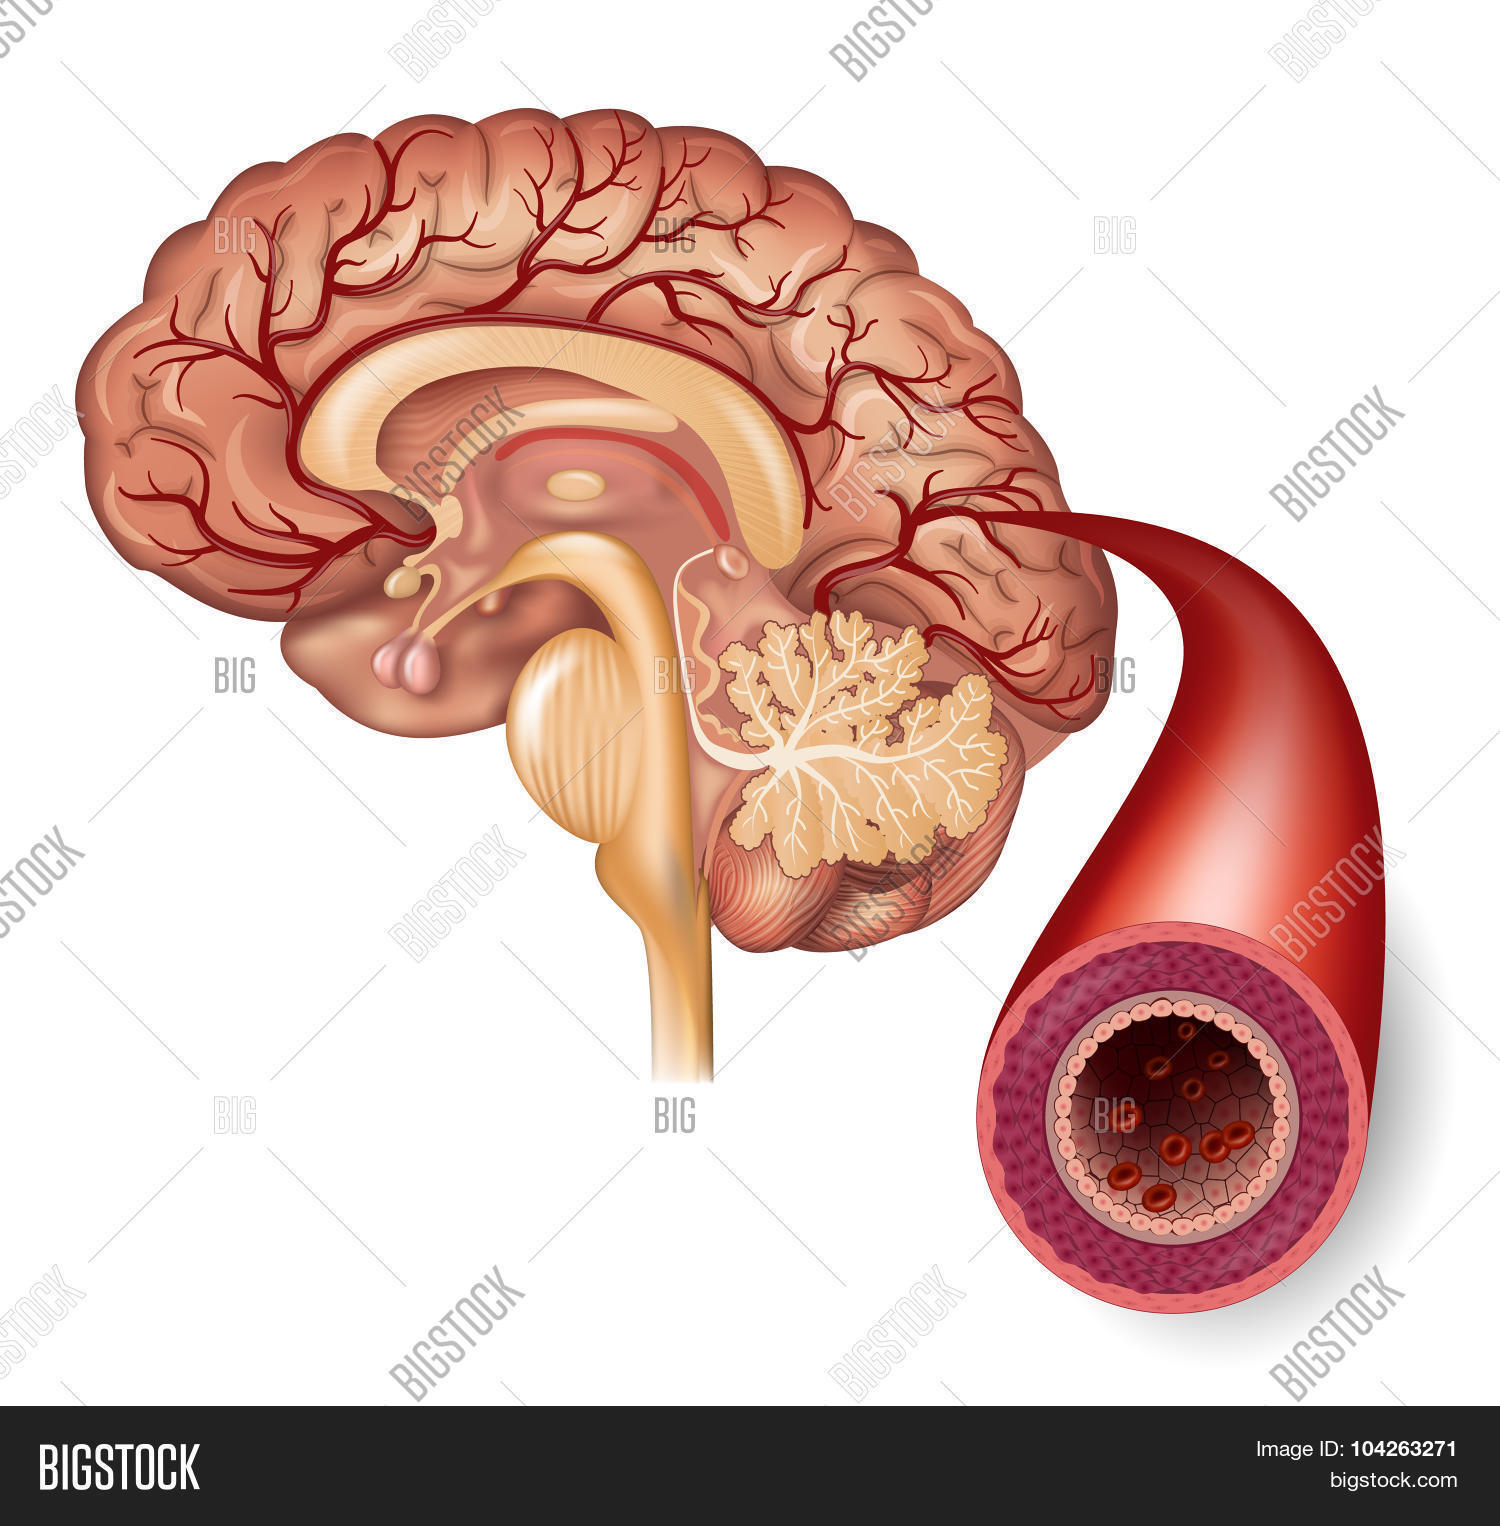 Normal Brain Artery Vector & Photo (Free Trial) | Bigstock